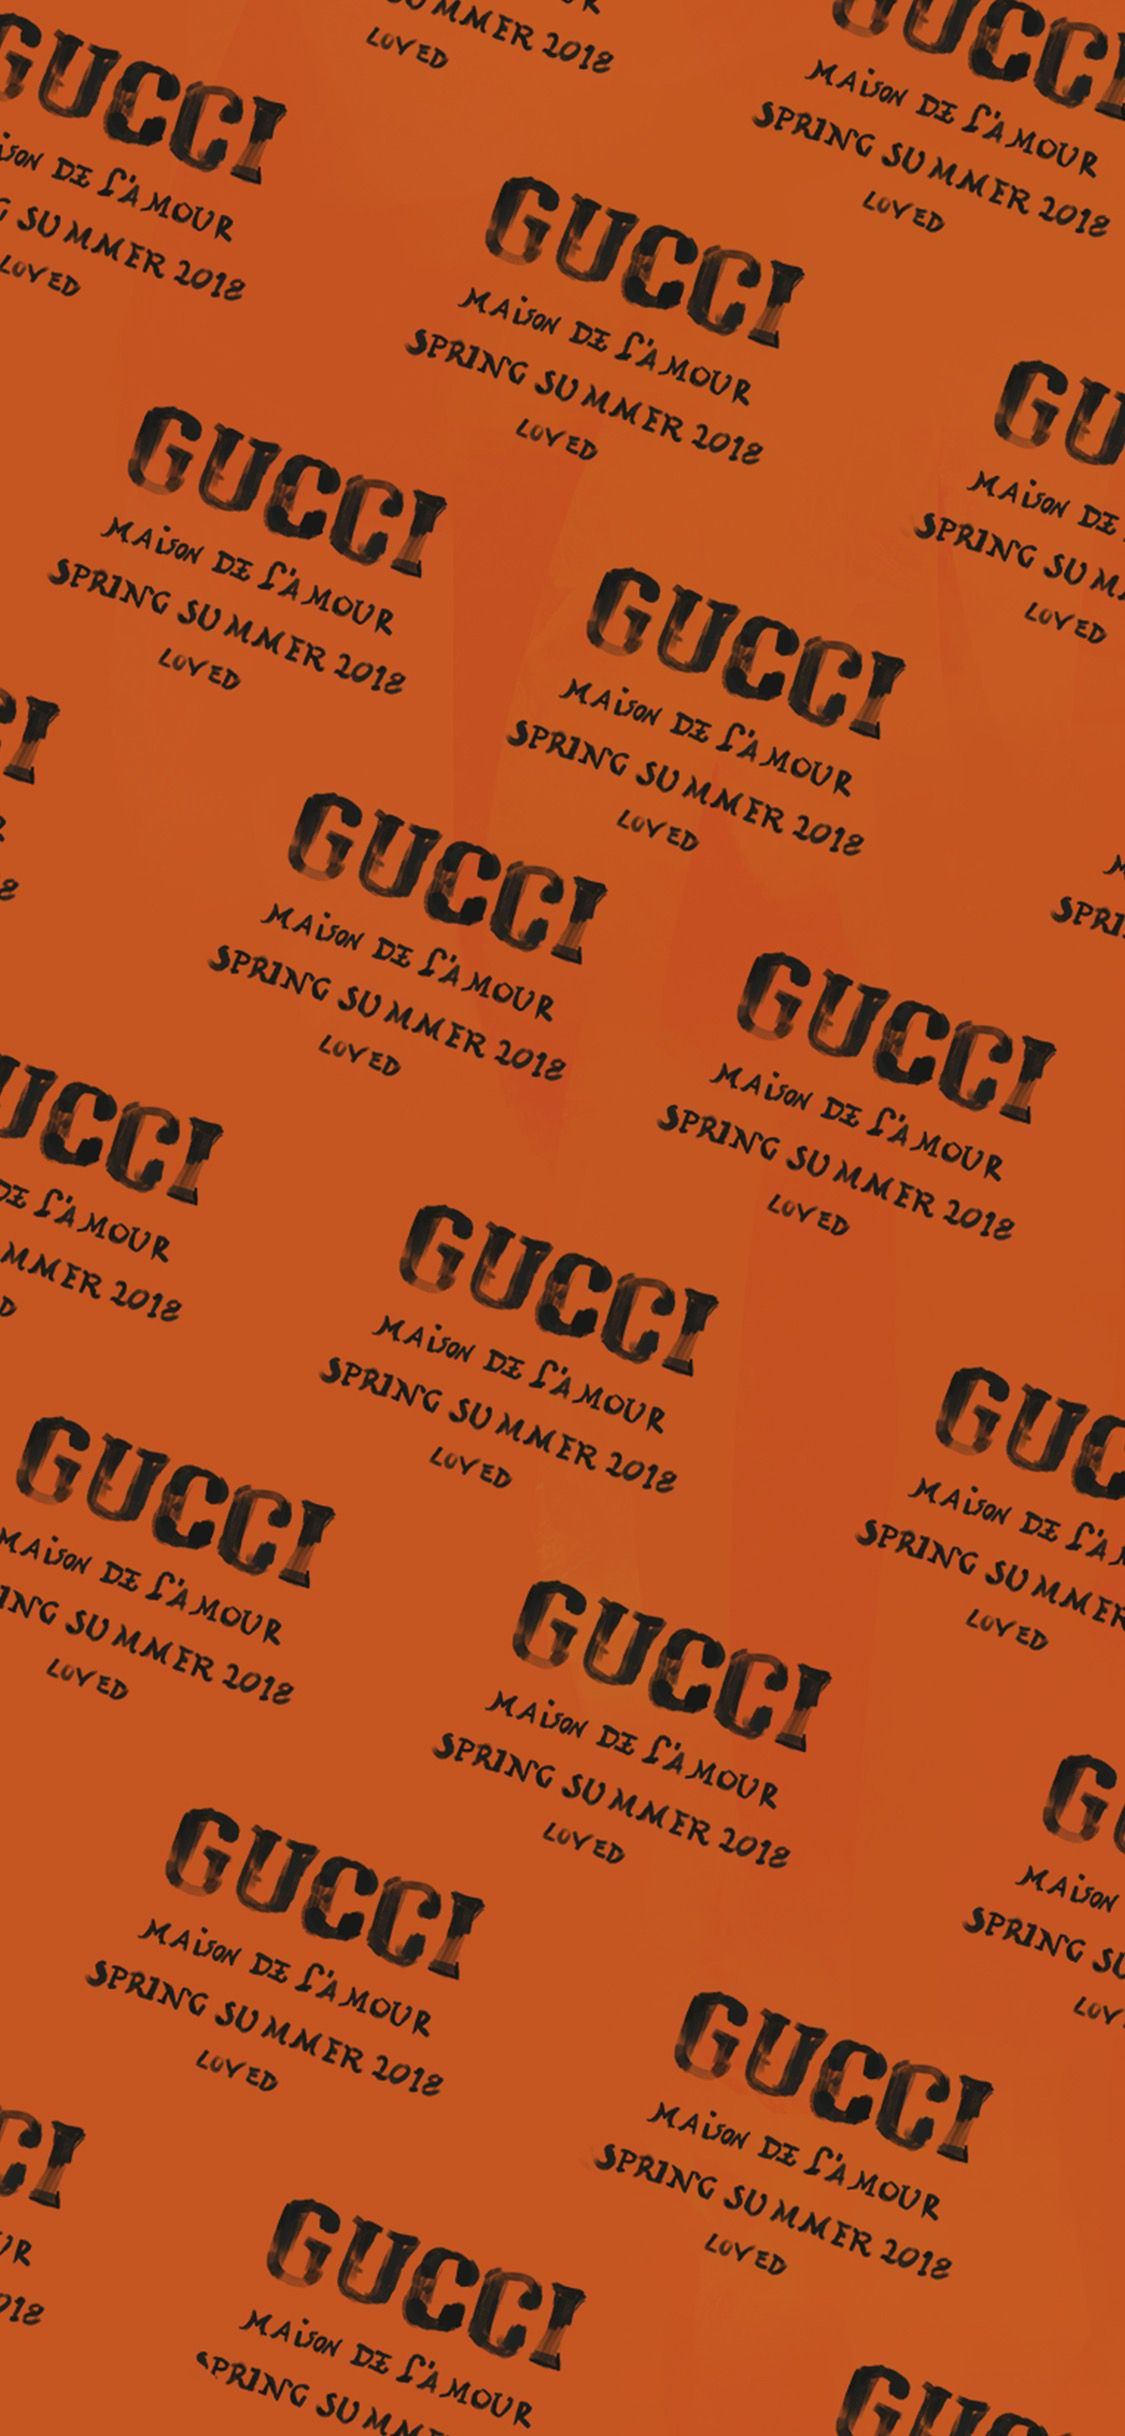 Backgrounds for iphone plus and max. Gucci app Gucci